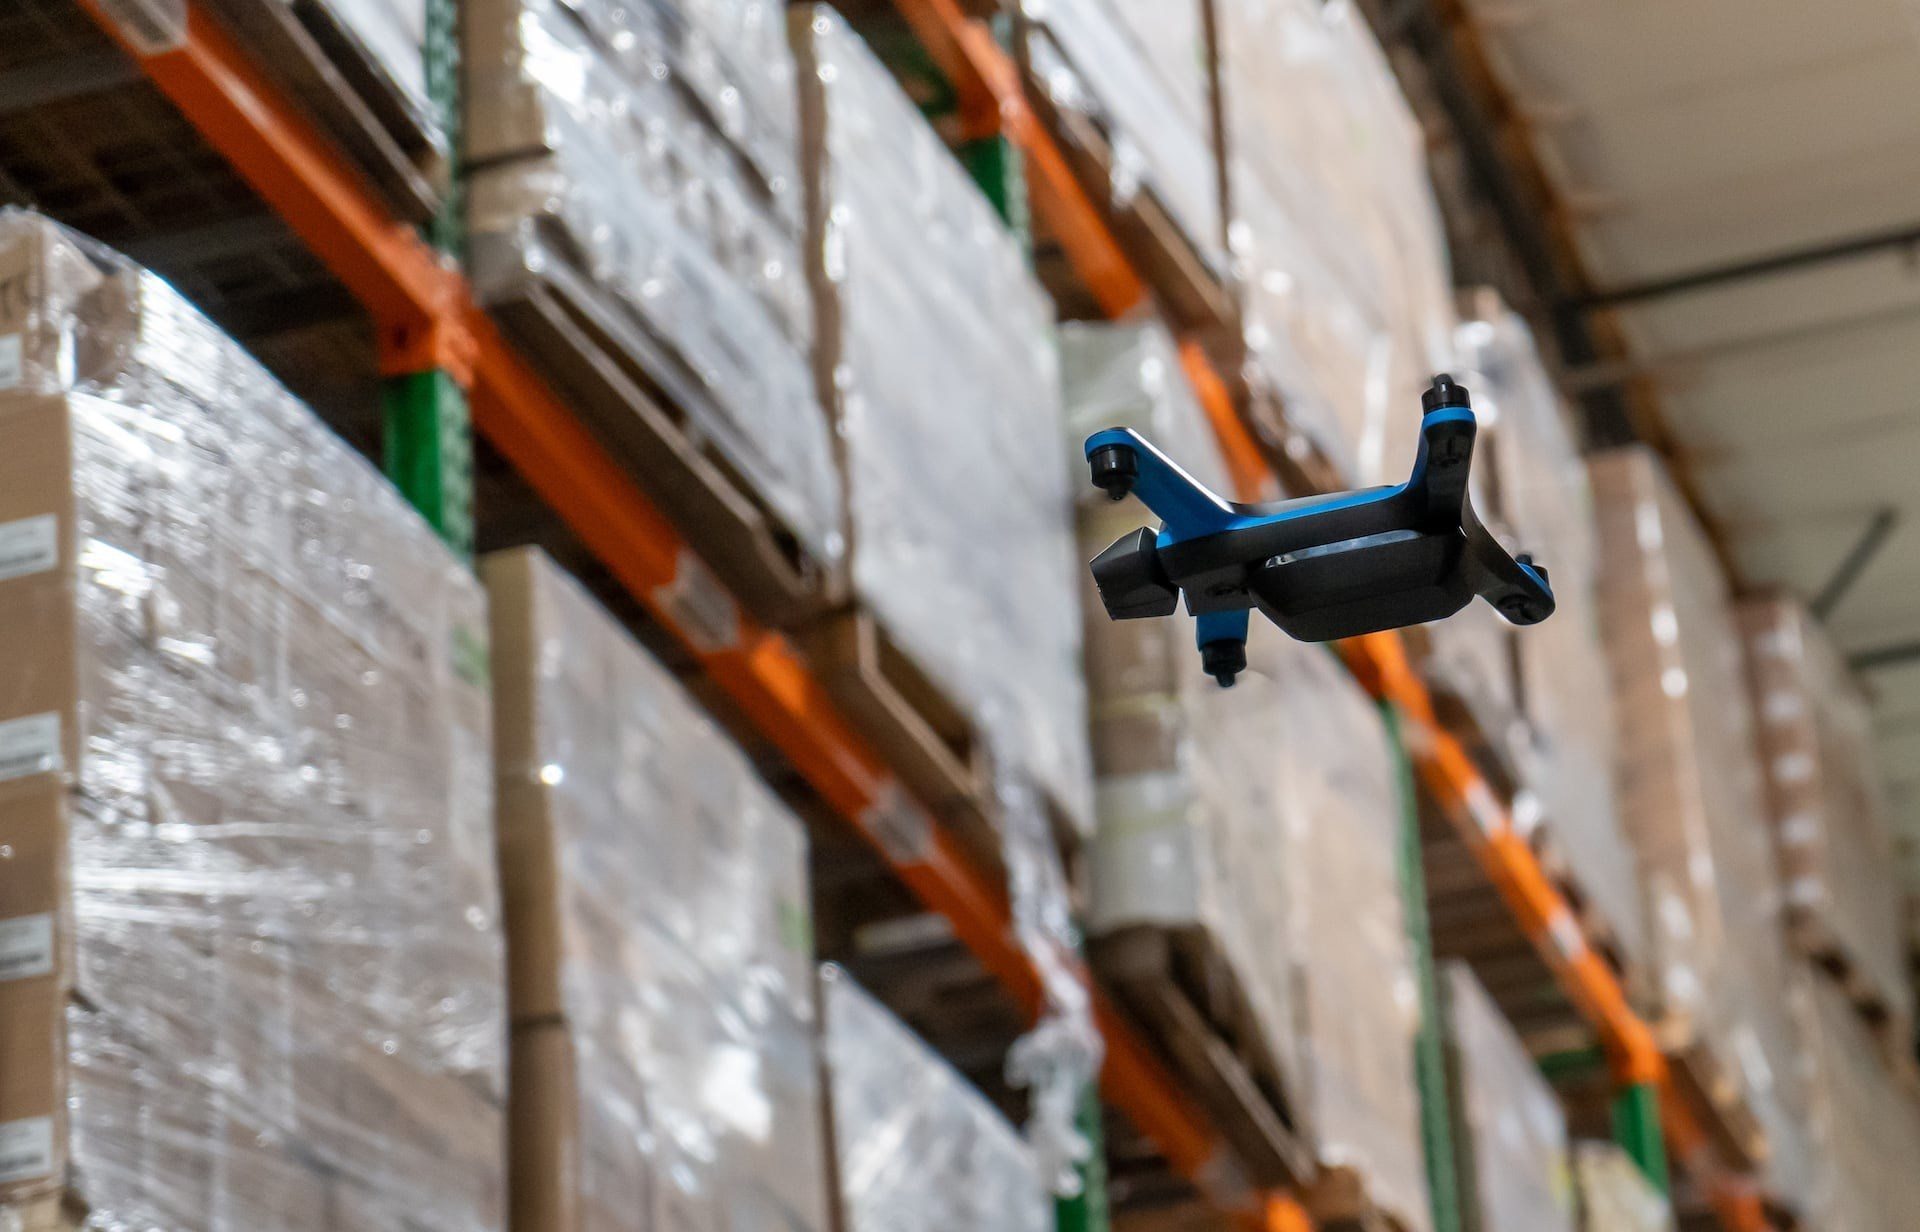 Ware drone flying warehouse